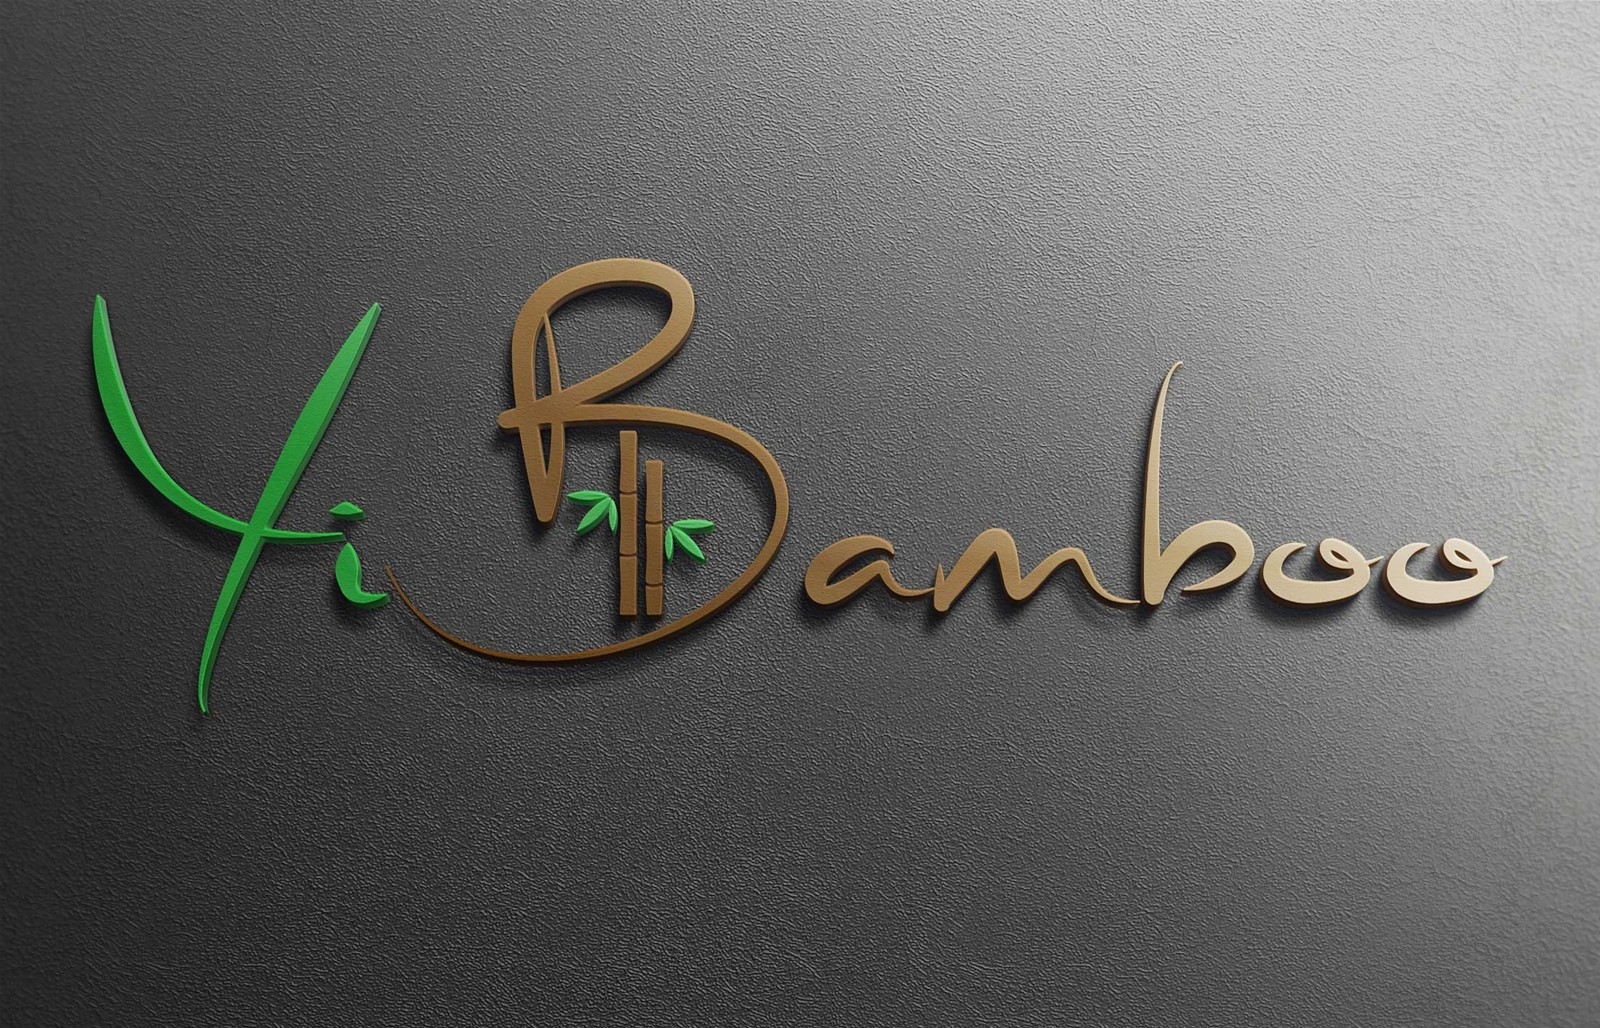 Yi Bamboo Wood Products Co., Ltd.